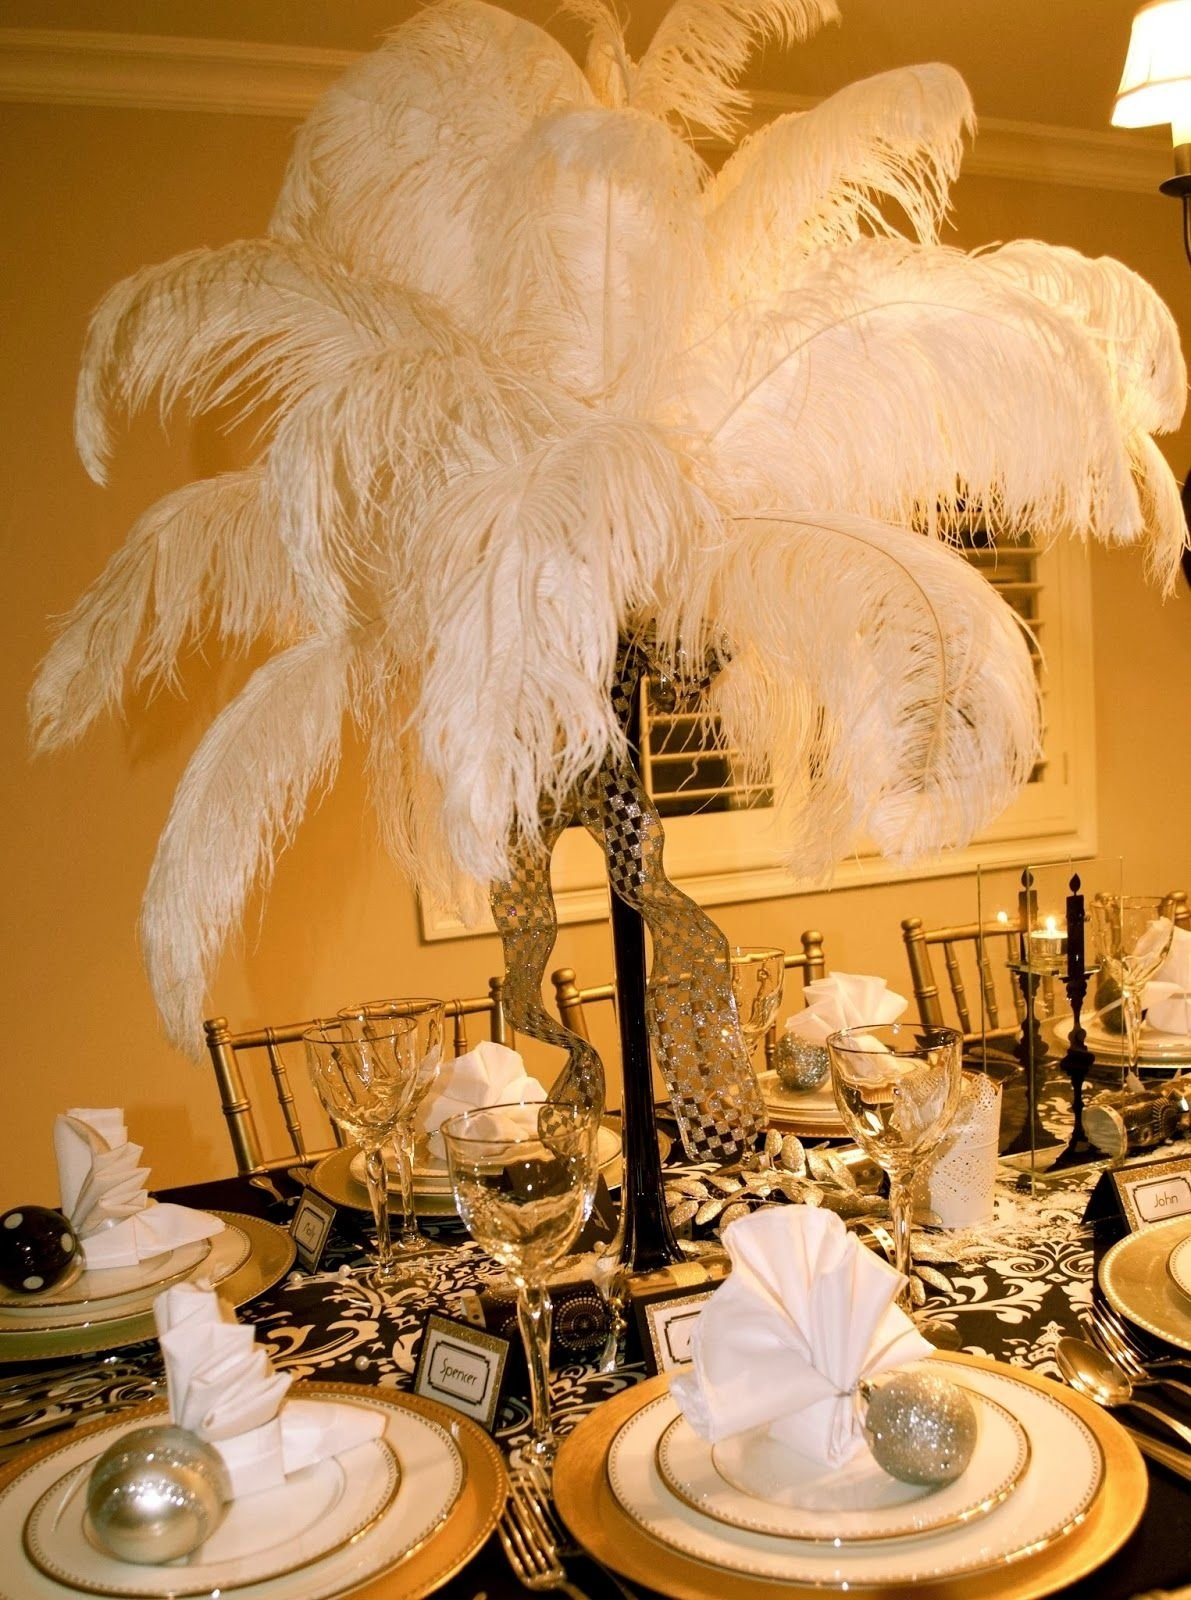 10 Fashionable The Great Gatsby Party Ideas great gatsbyparty decorations a great gatsby party would be fun 2020